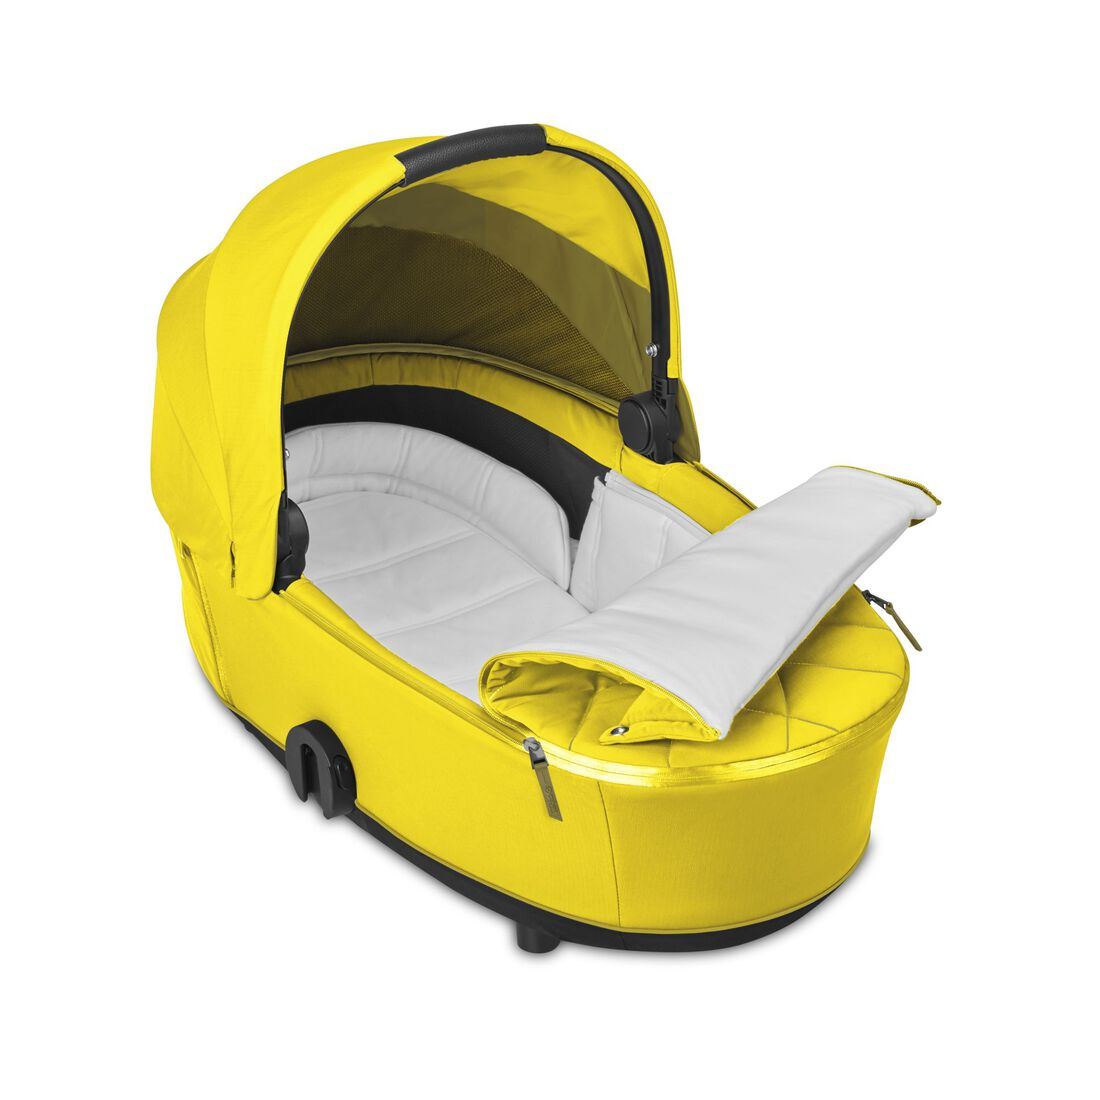 CYBEX Mios Lux Carry Cot - Mustard Yellow in Mustard Yellow large Bild 2